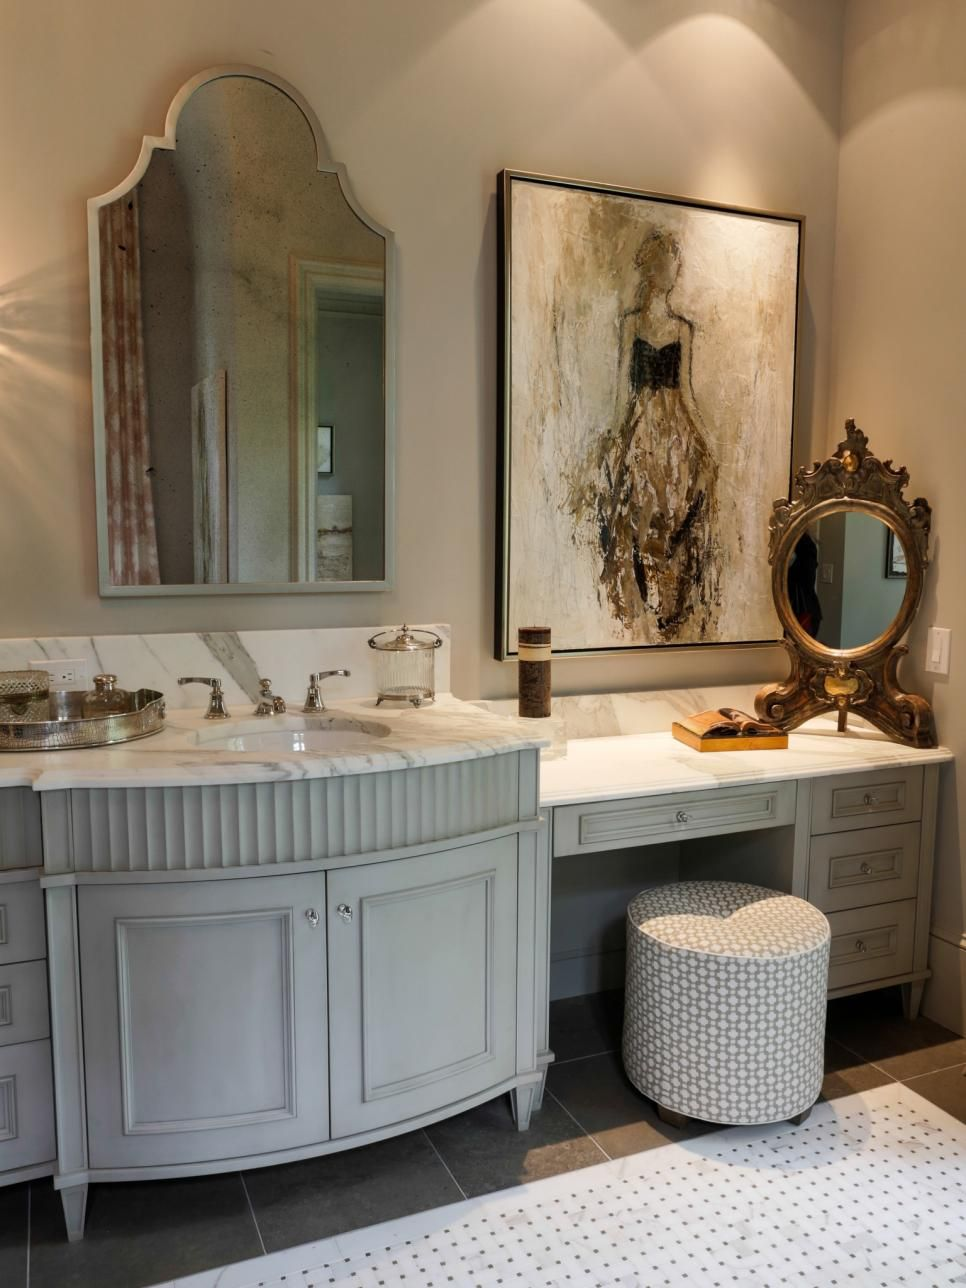 An Ornate Gold Mirror Complements The Larger Vanity Mirror In This French  Country Bathroom. The